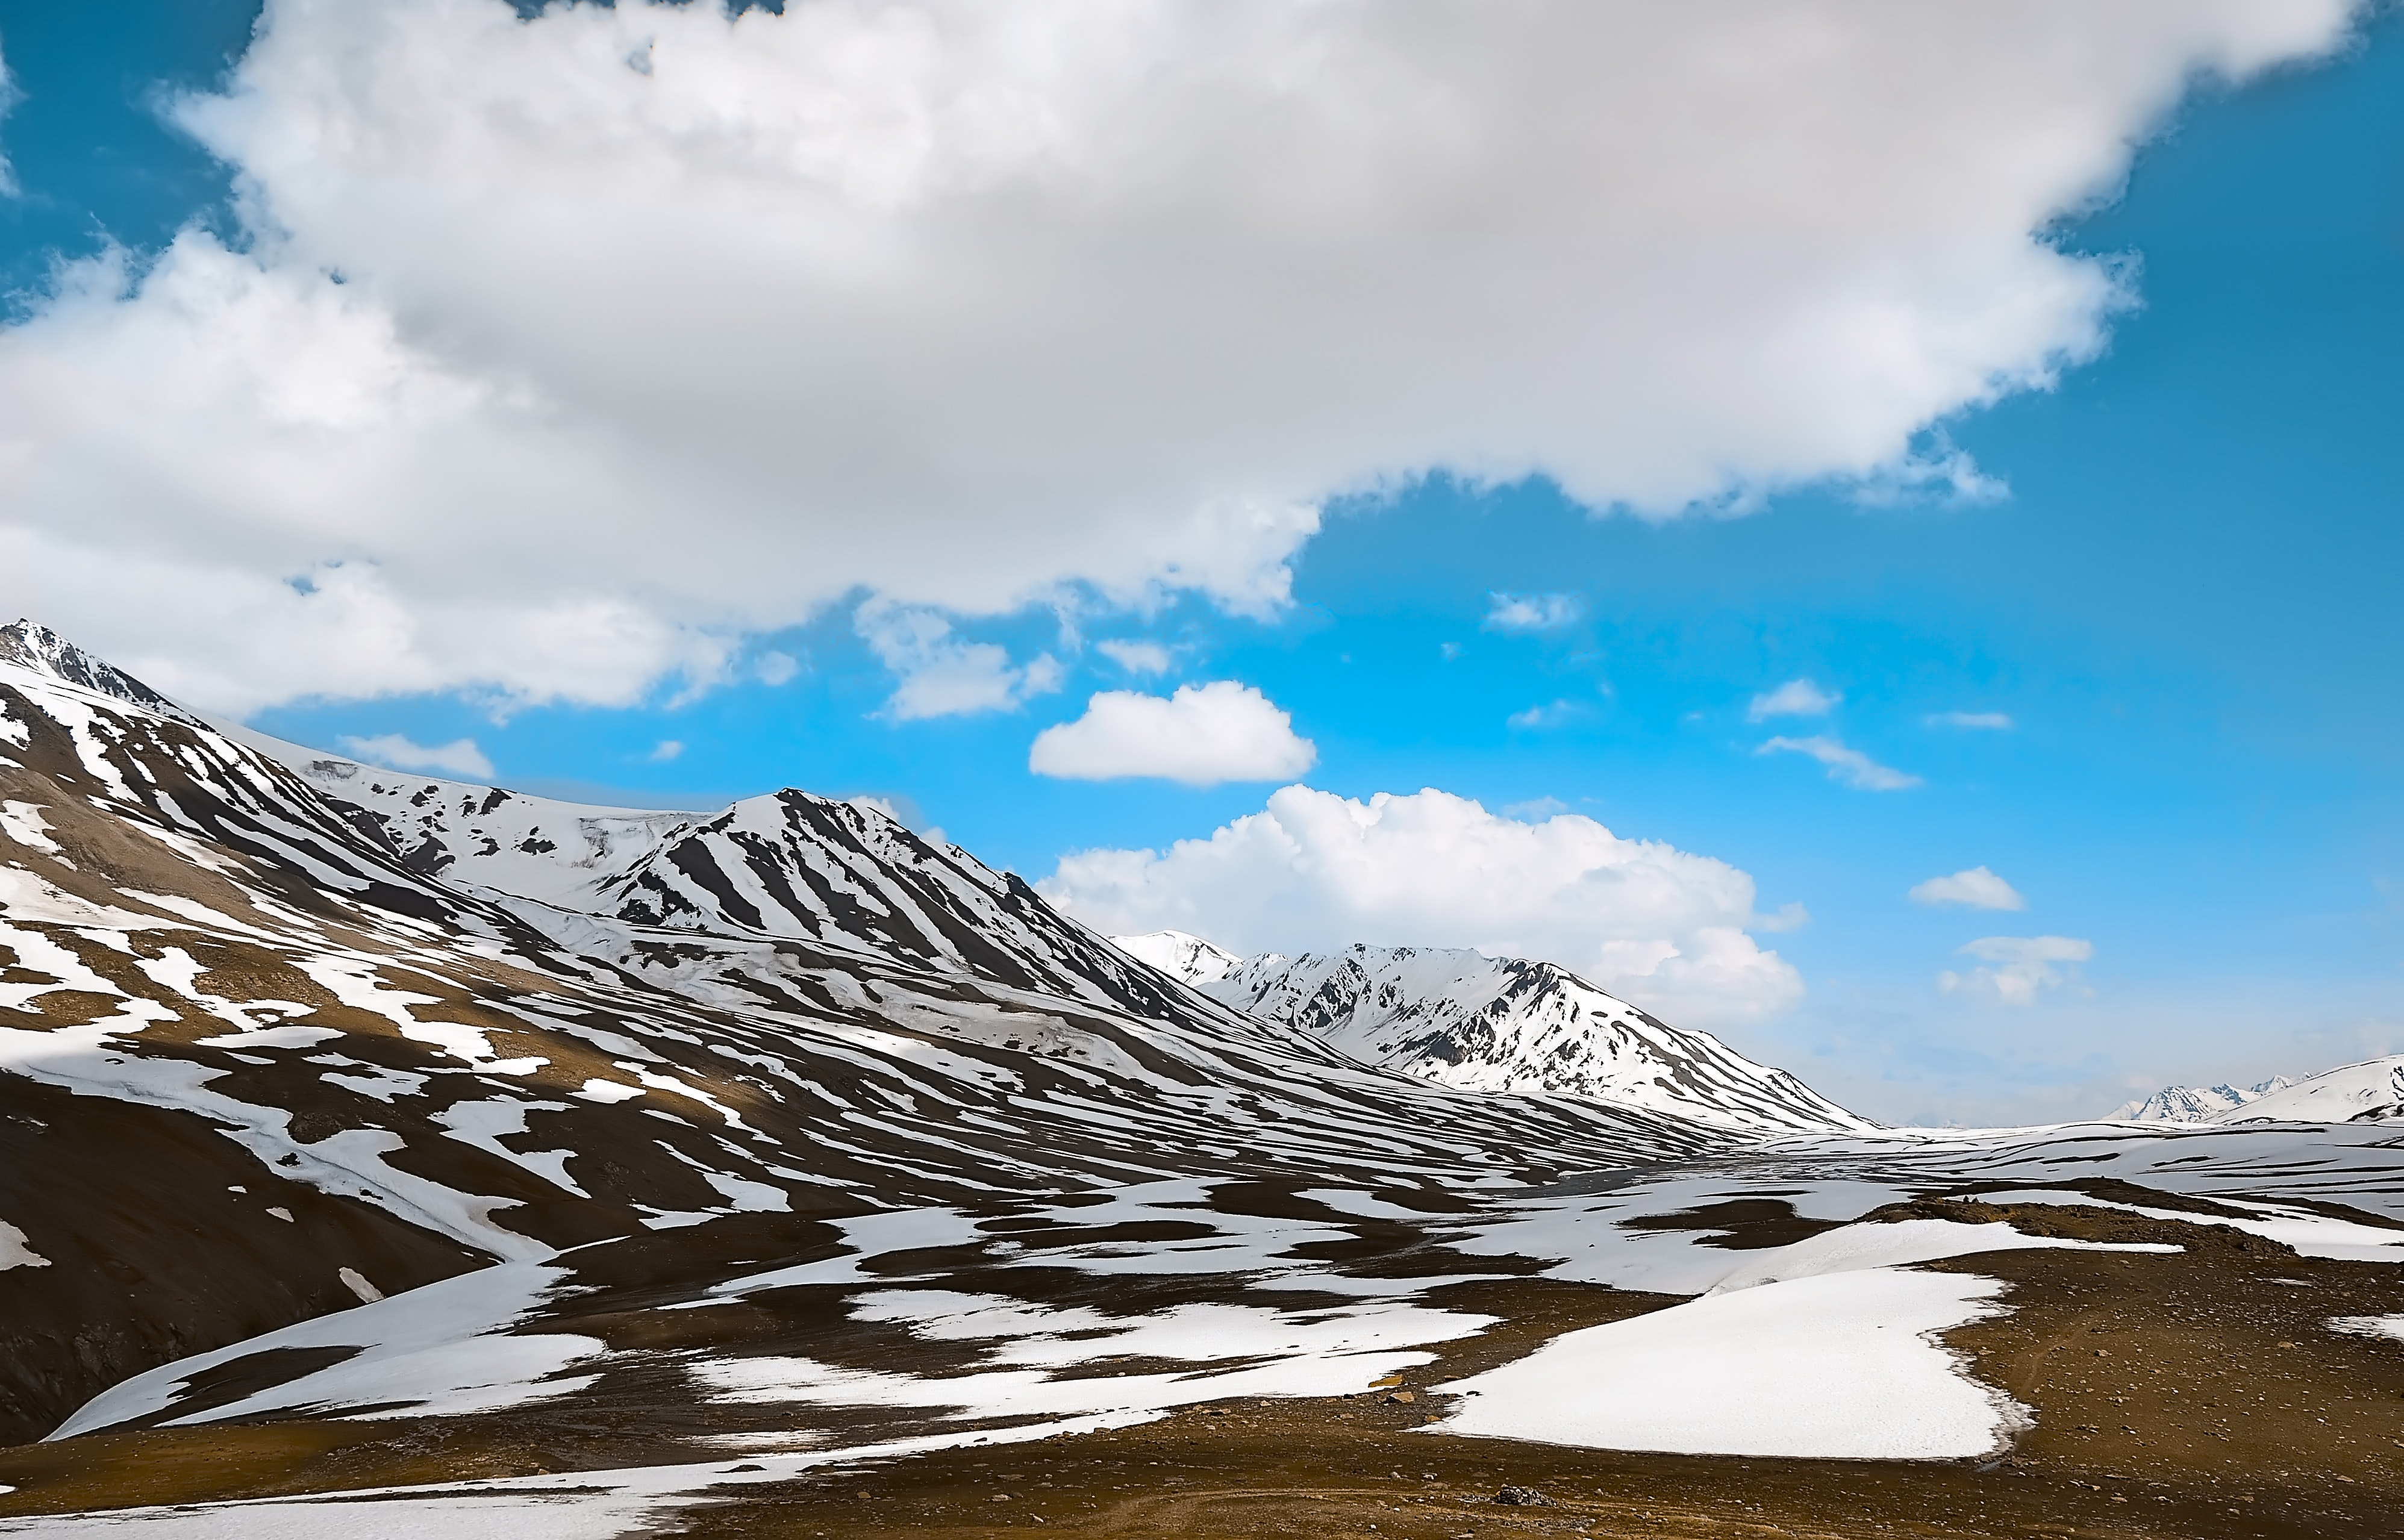 Worm's Eye View Photography of Alps Mountains, Alps, Landscape, Water, Travel, HQ Photo